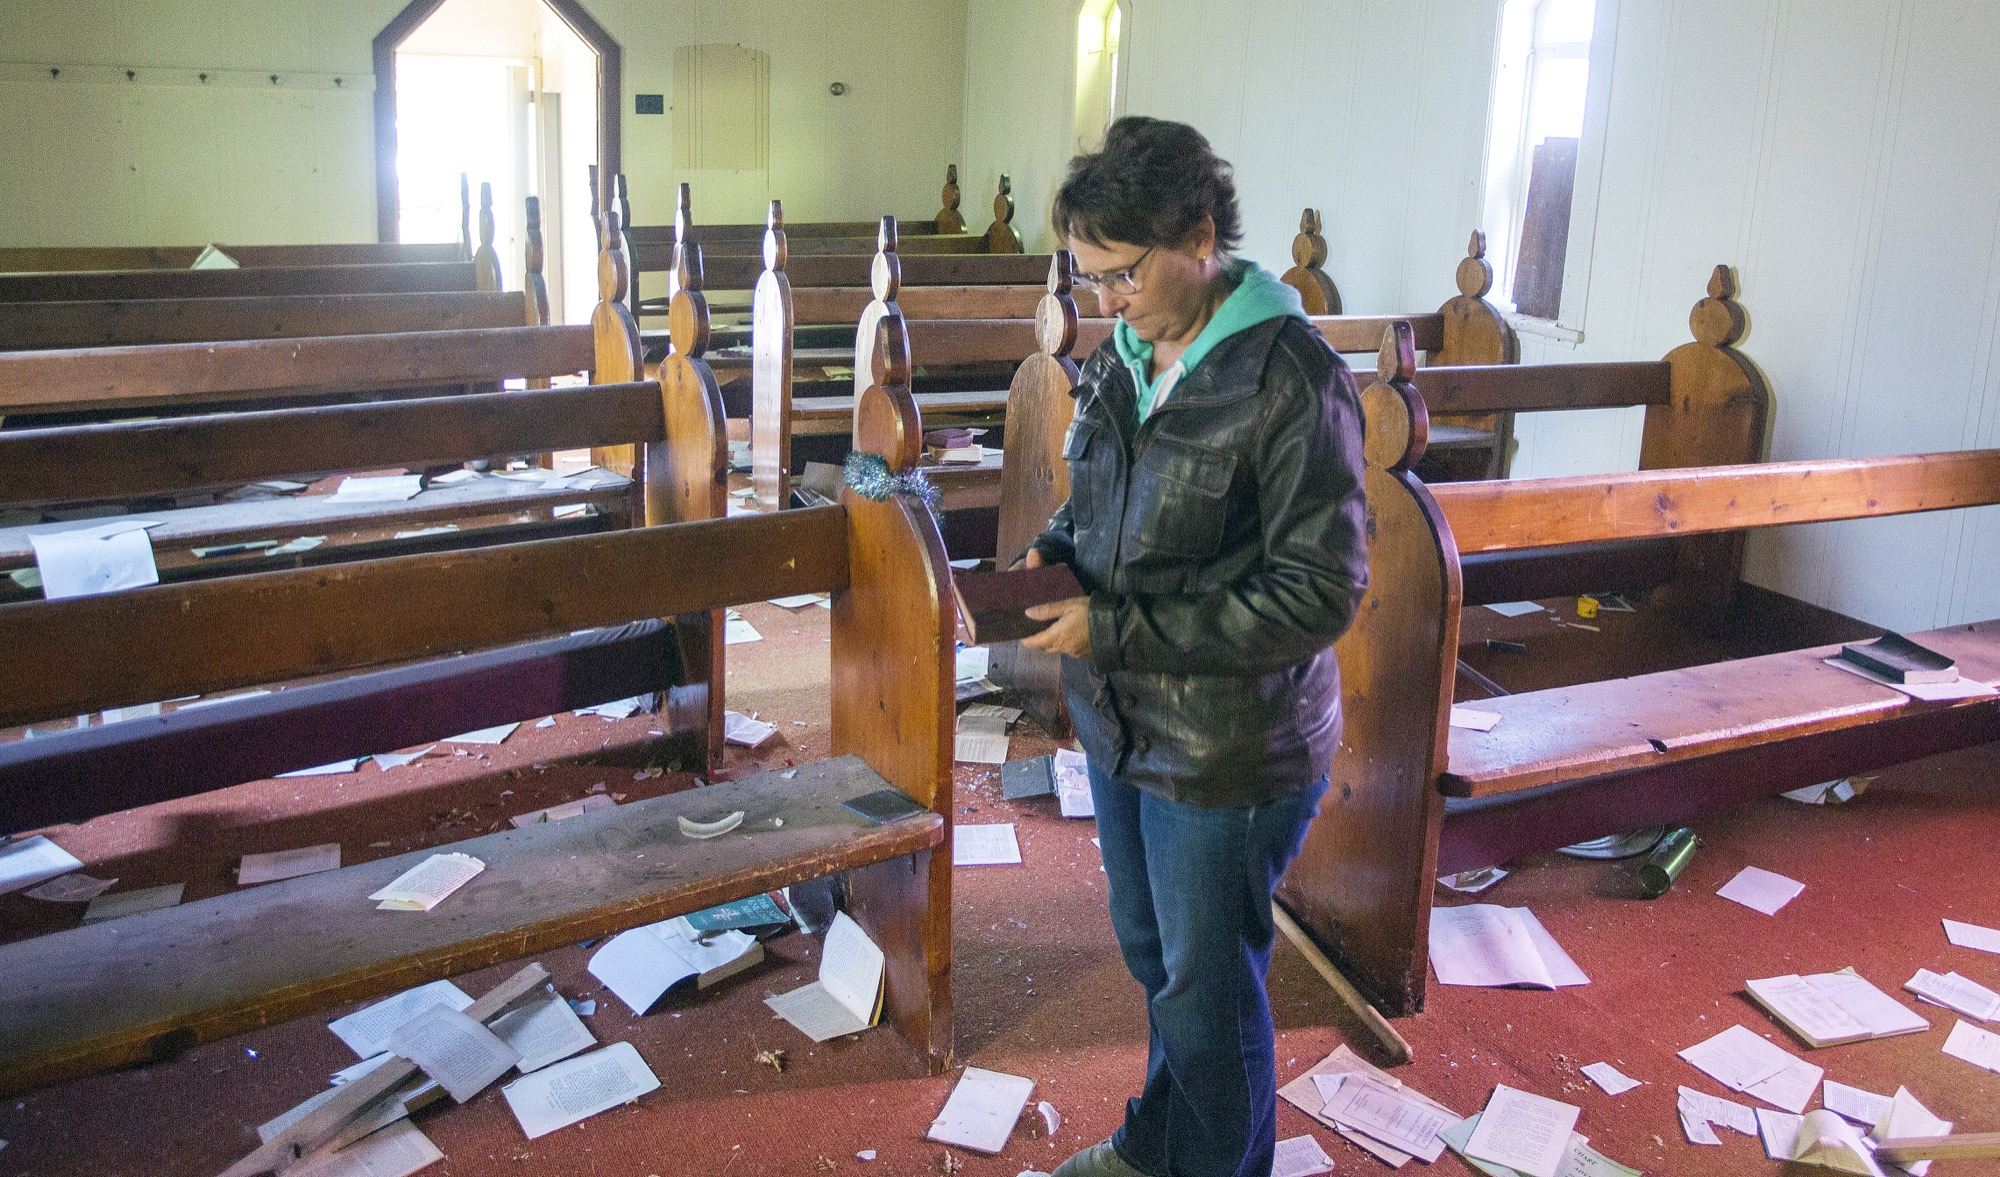 Shelley Meakin explores the vandalized St. Thomas Anglican church in Rapid City on Wednesday. The church was built in 1880 and is set to be demolished. The church has not held a service in more than a decade.